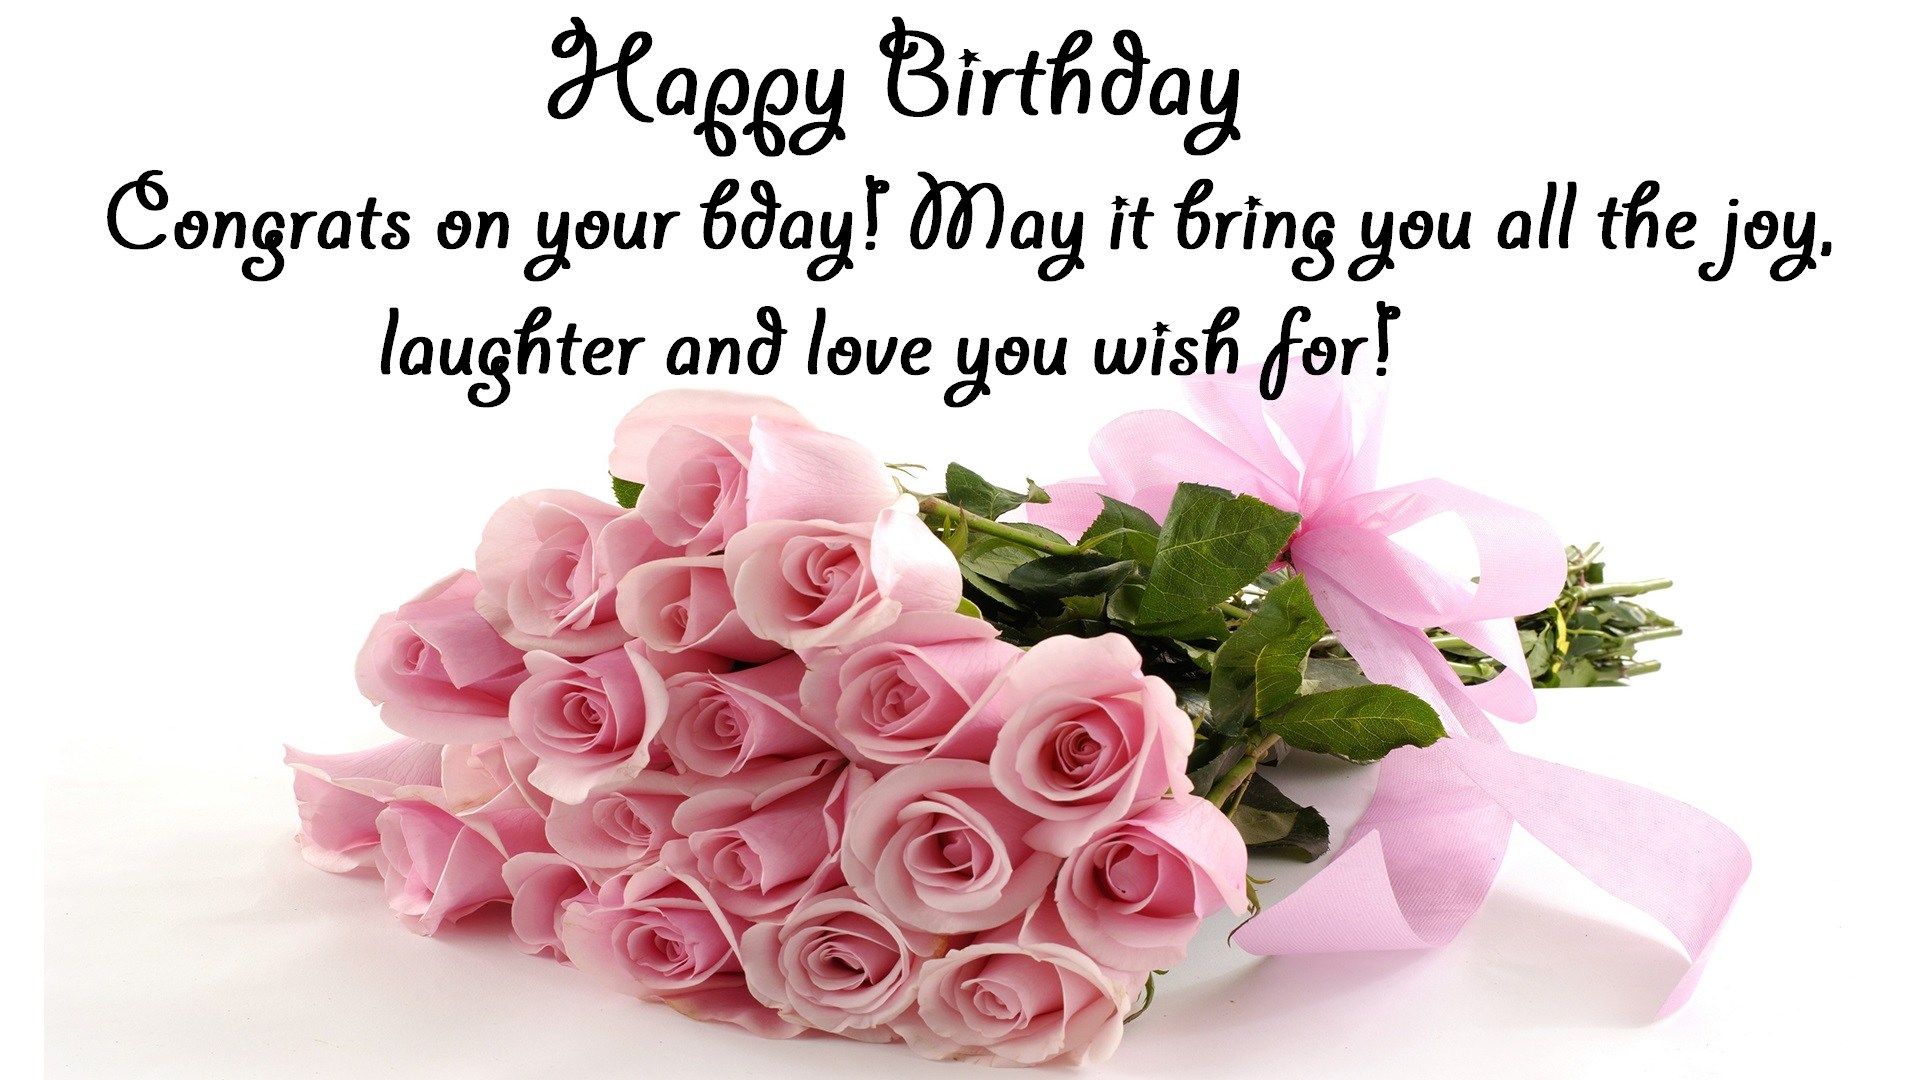 Happy Birthday Wishes For A Friend Pregnancy Congratulations Message 2096017 Hd Wallpaper Backgrounds Download